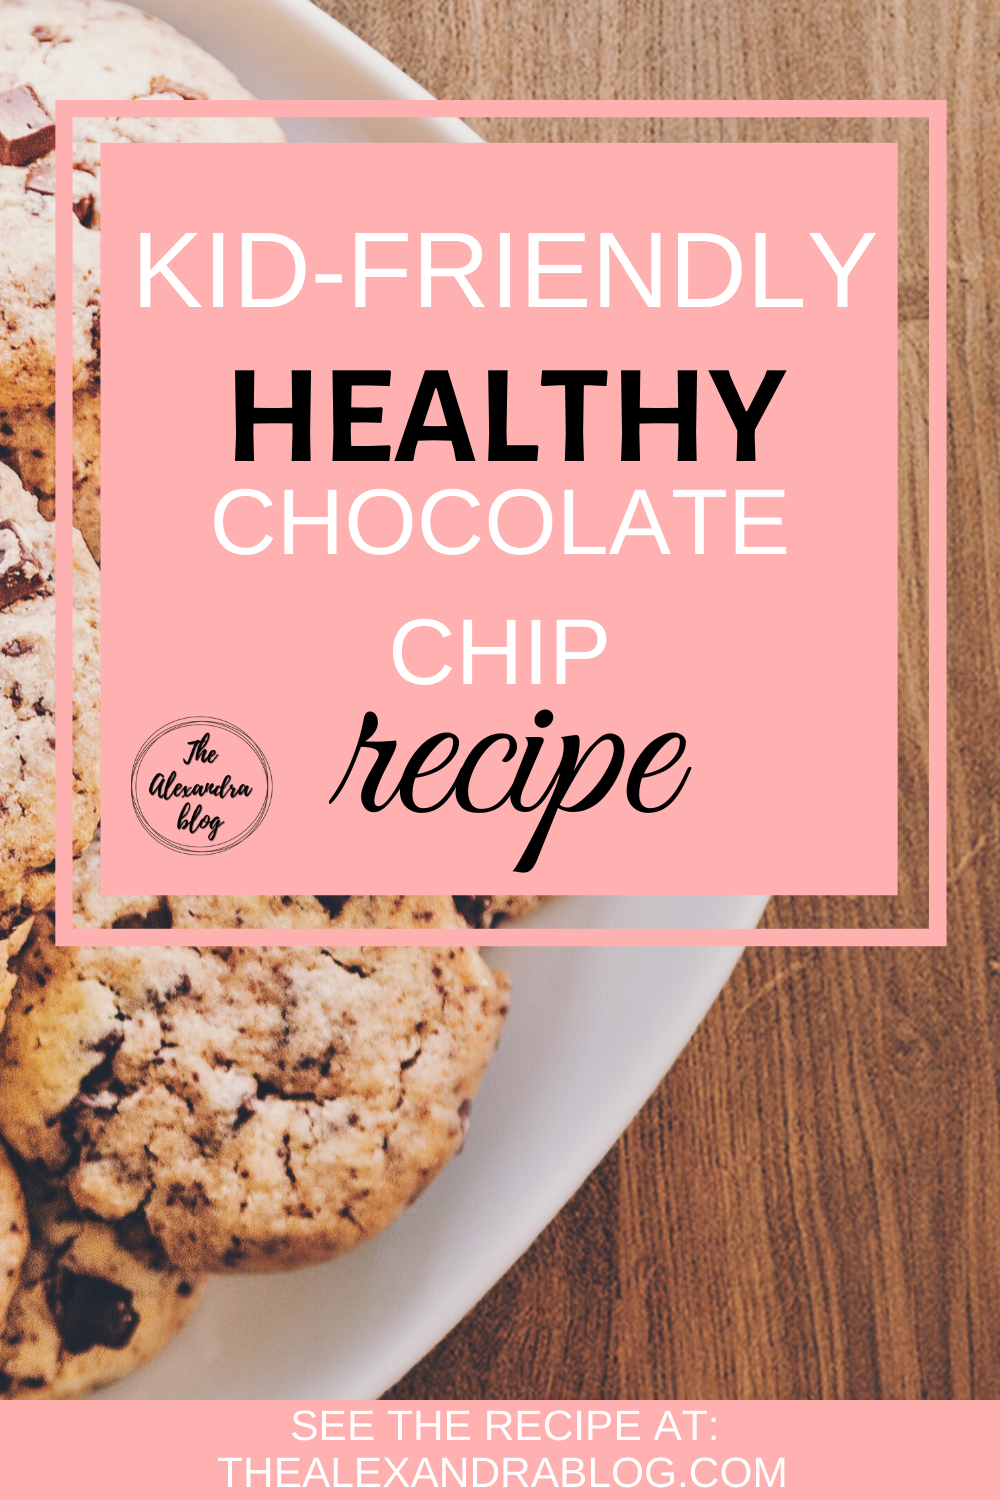 One of the best healthy recipes for chocolate chip cookies! This low-calorie recipe is so great and delicious it automatically goes to the ''Kid friendly meals'' list! #healthyrecipes #chocolatechipcookiesrecipe #kidfriendlymeals #lowcalorierecipes #lowcalorierecipes #healthyrecipeseasy #healthydessertrecipes